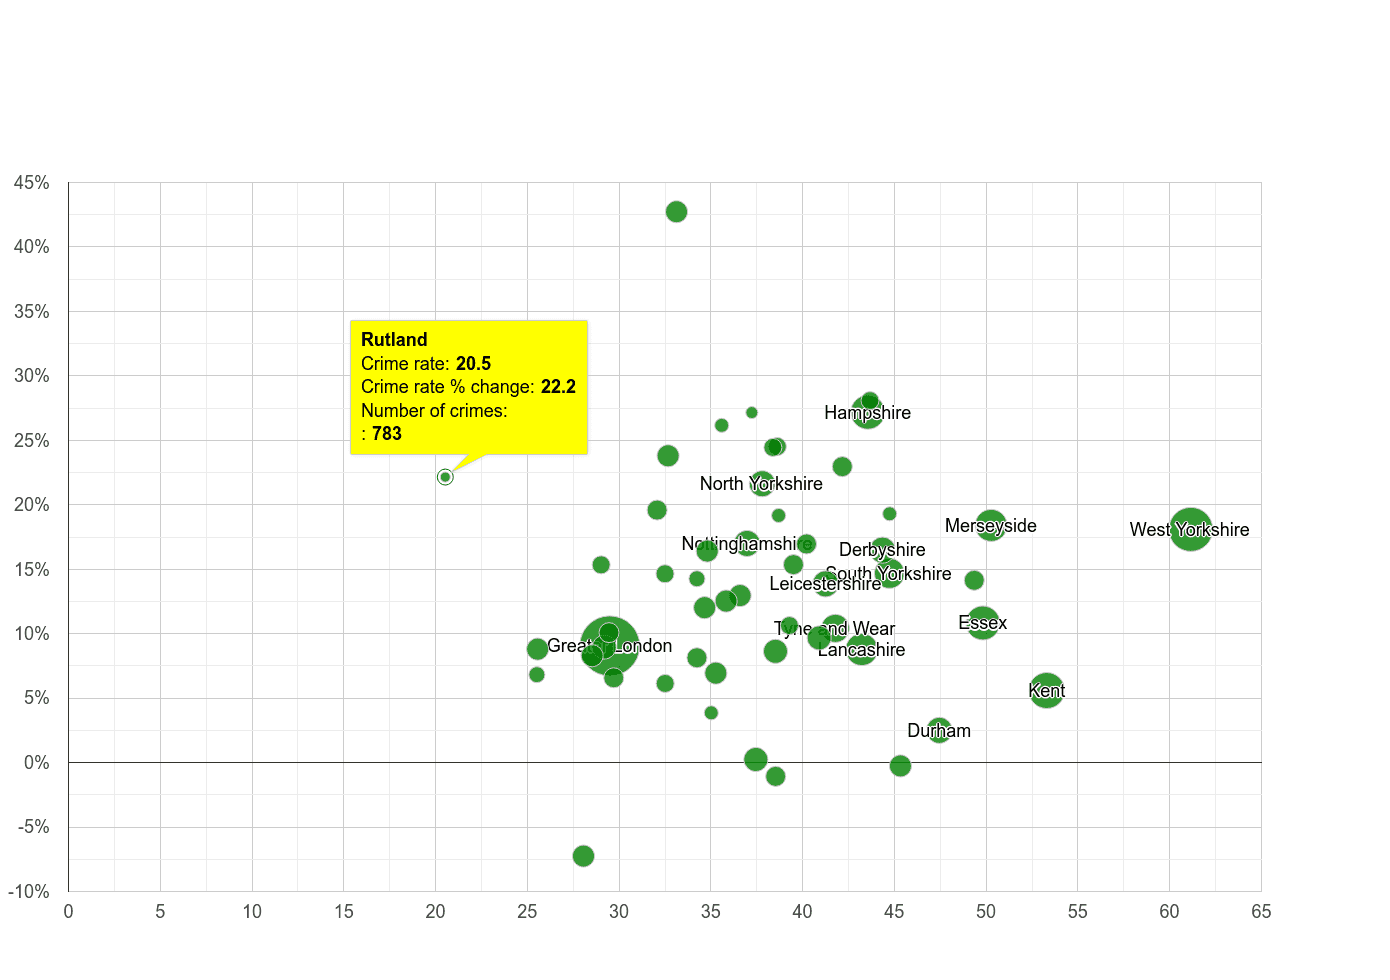 Rutland violent crime rate compared to other counties